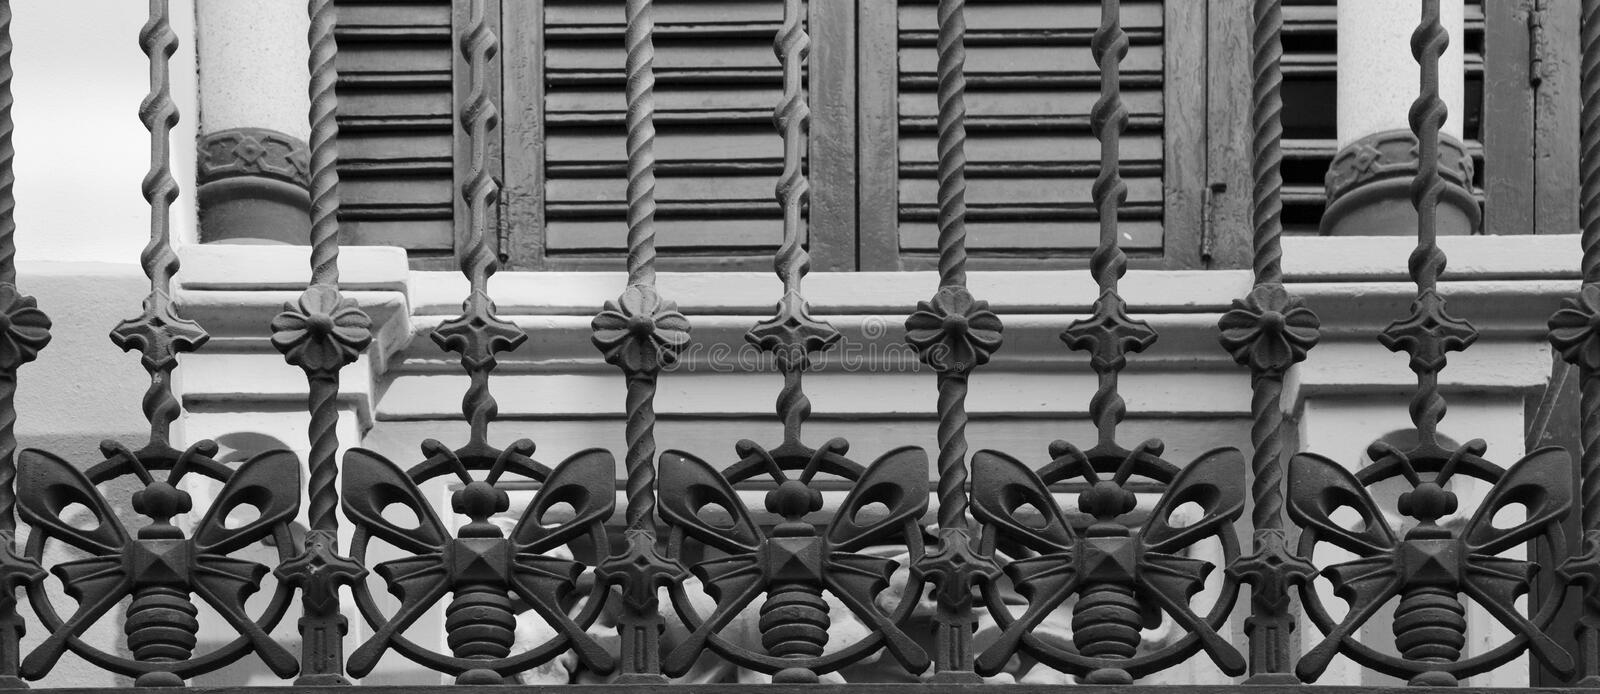 Iron butterflies on the balcony´s fence stock photography